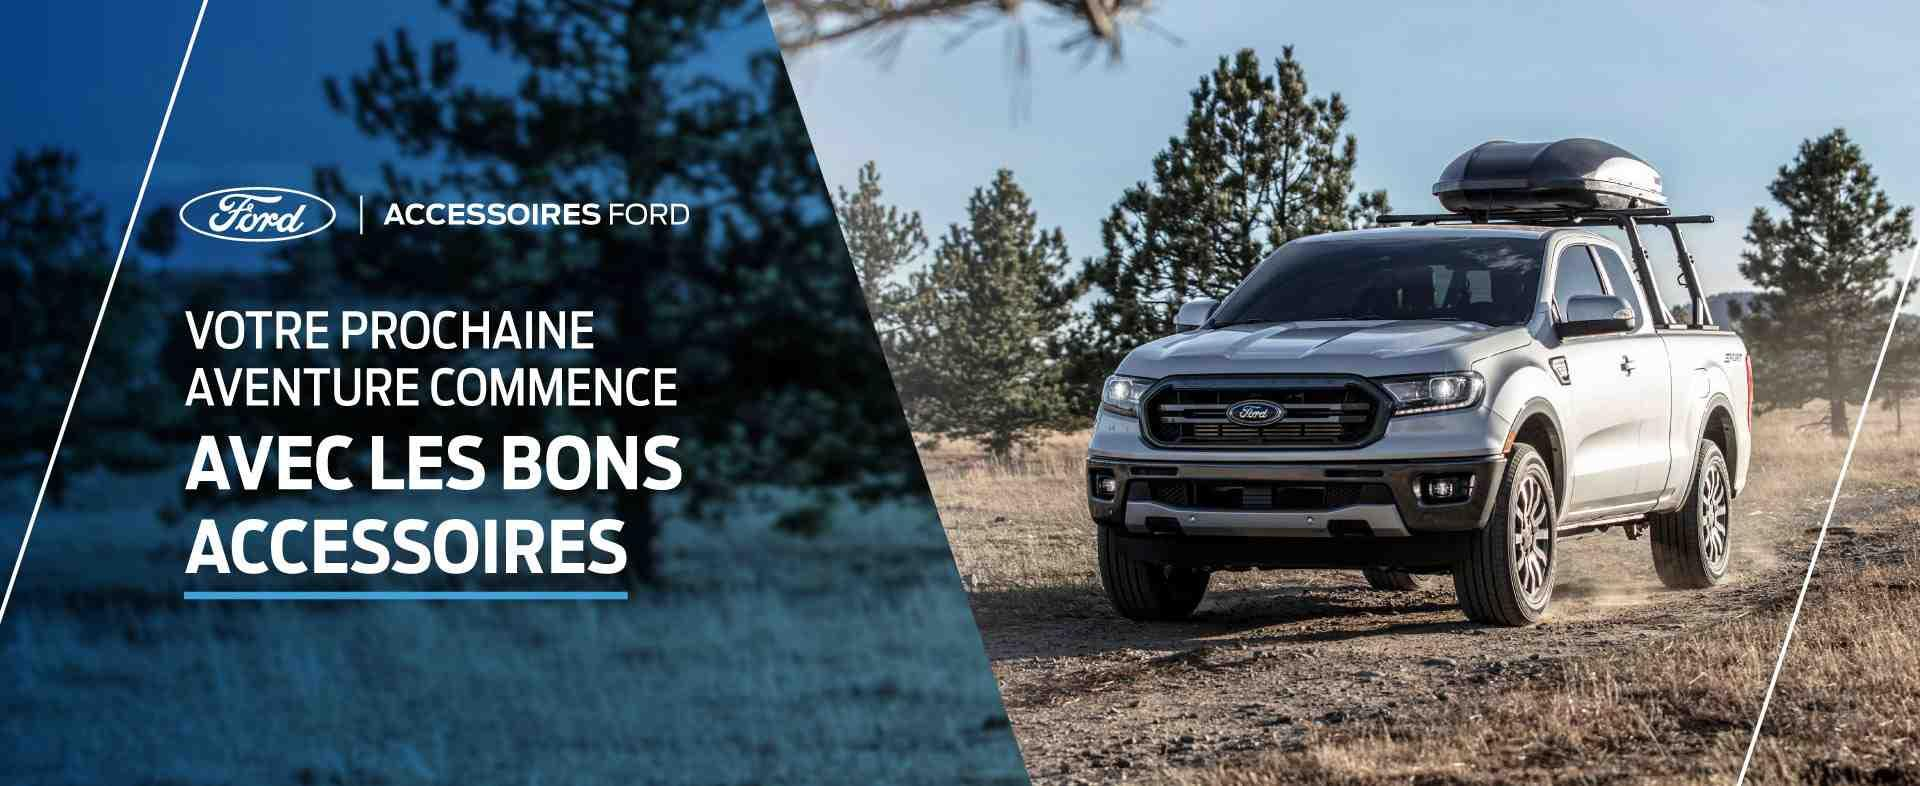 Accessoires Ford